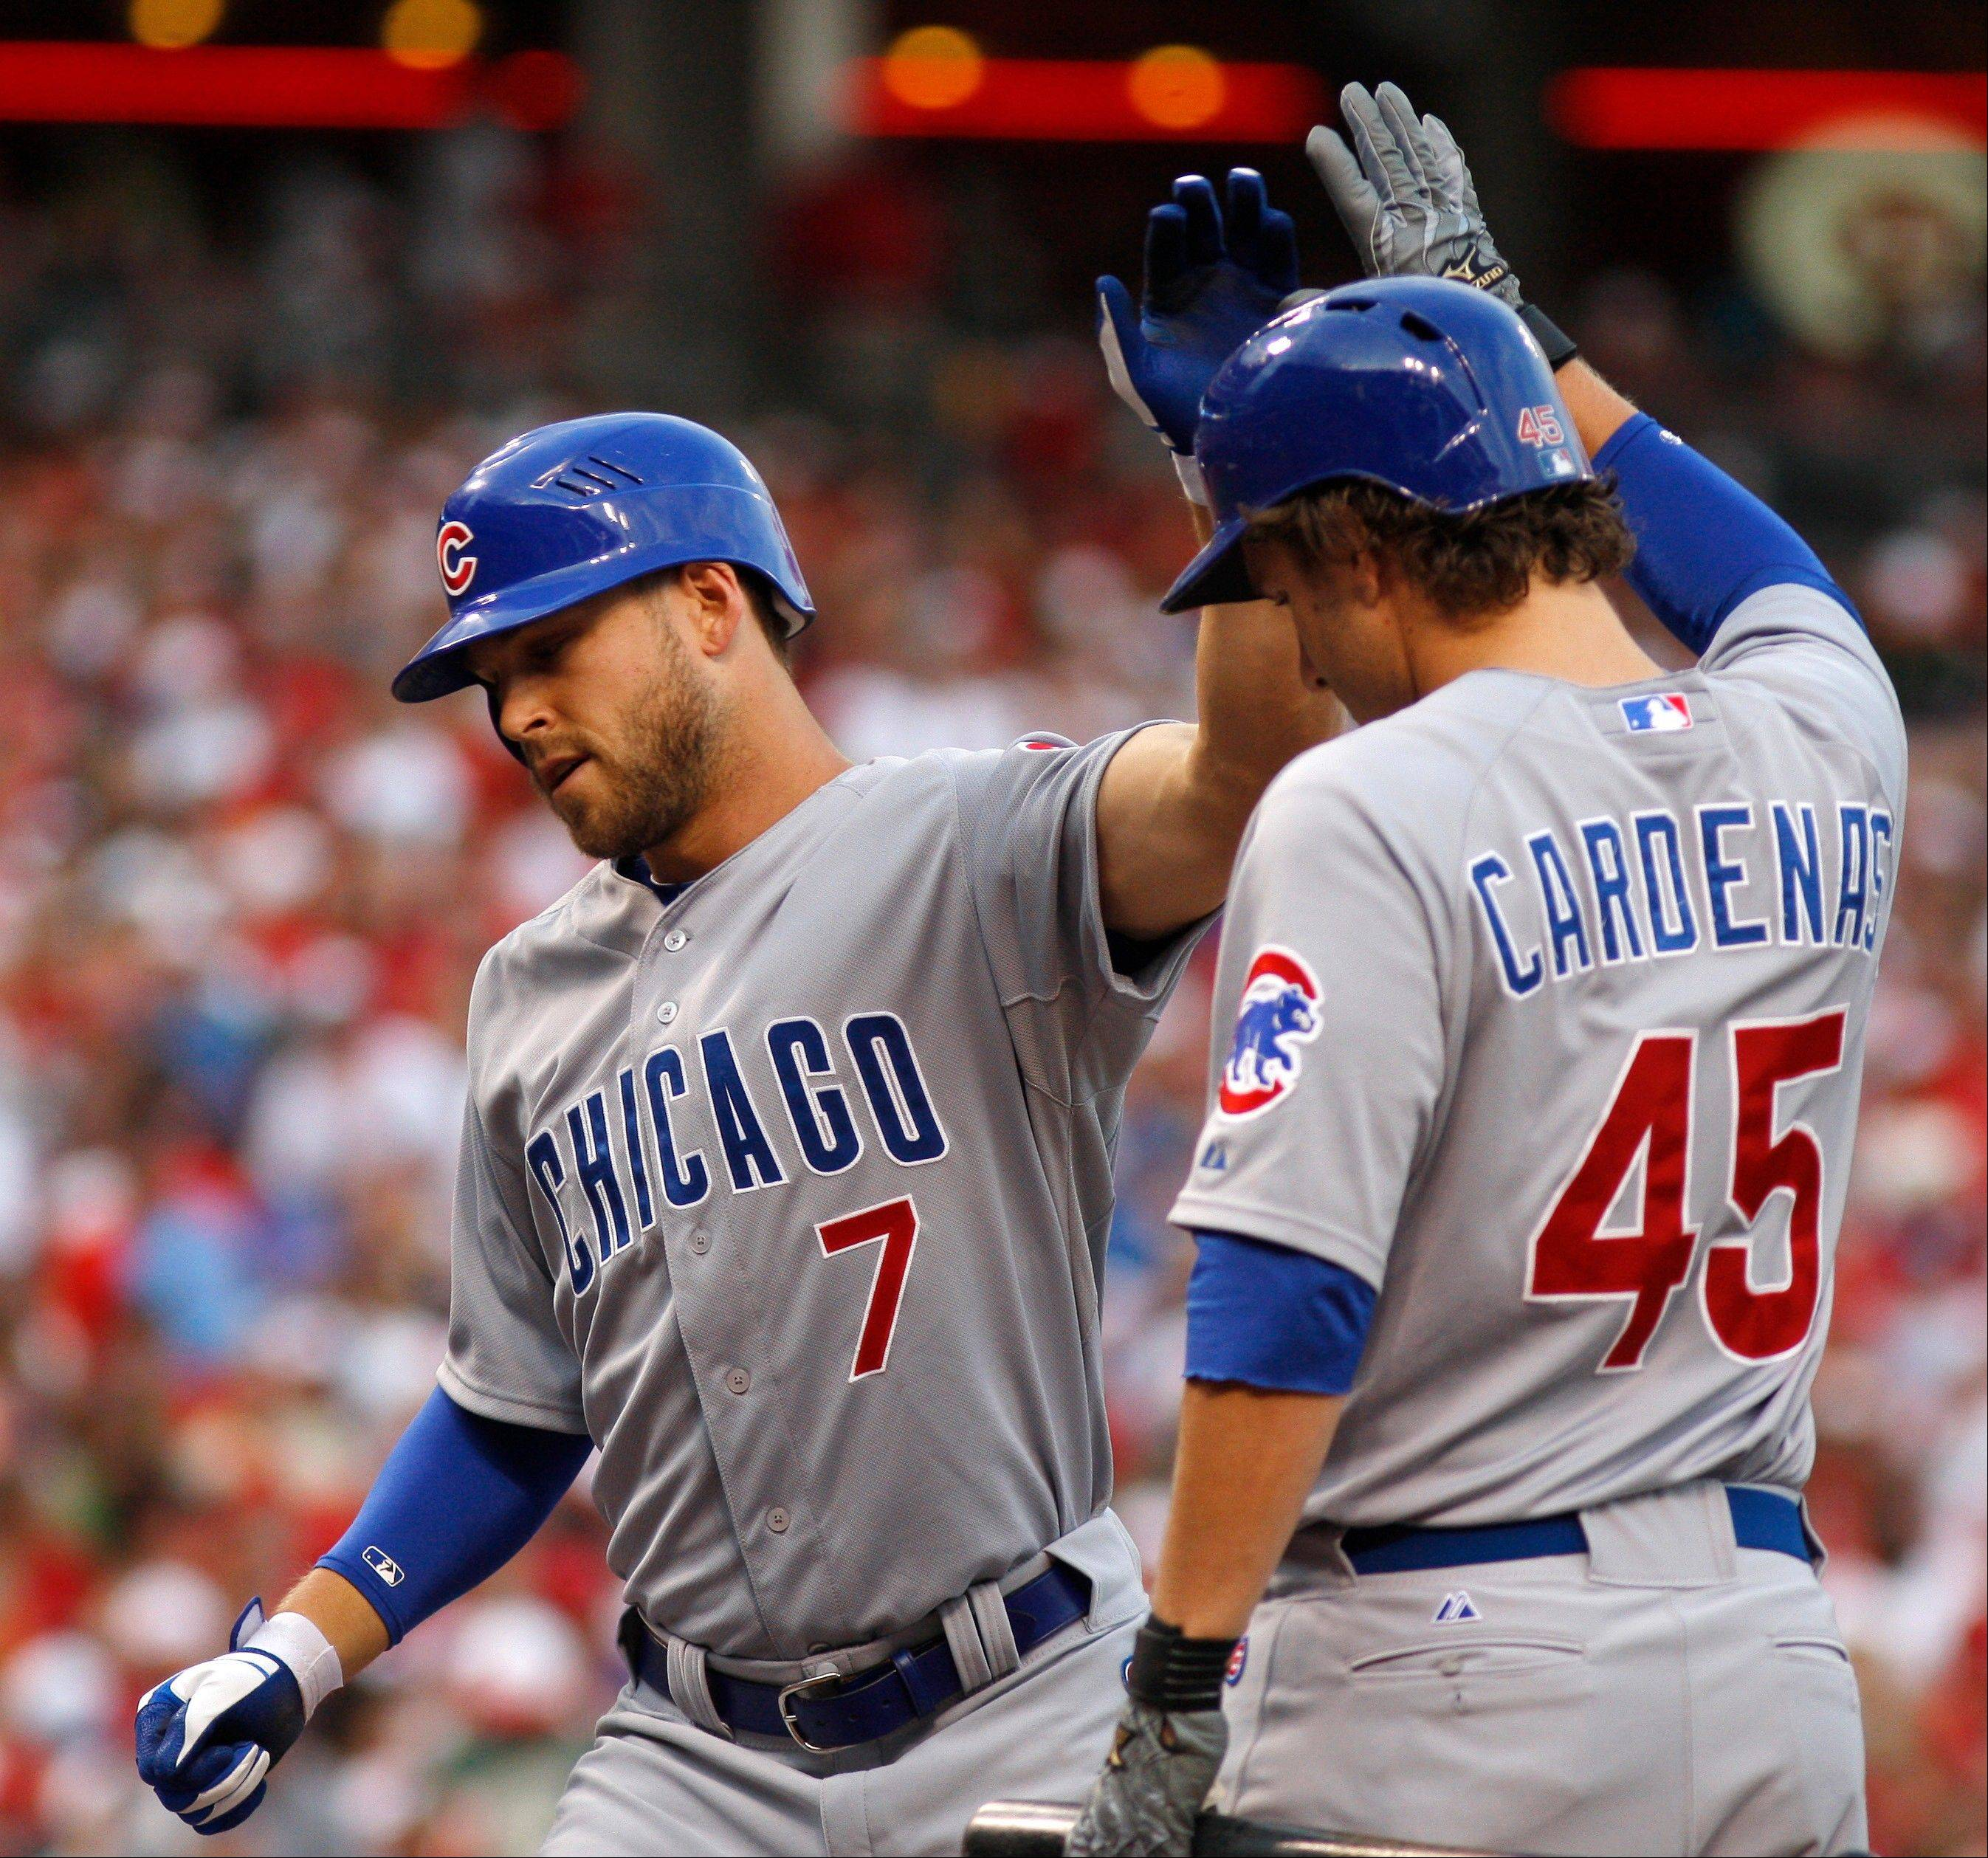 Cubs center fielder Brett Jackson (7) is congratulated by Adrian Cardenas (45) Saturday night after hitting hit a solo home run off Cincinnati Reds starting pitcher Todd Redmond during the second game of a doubleheader.